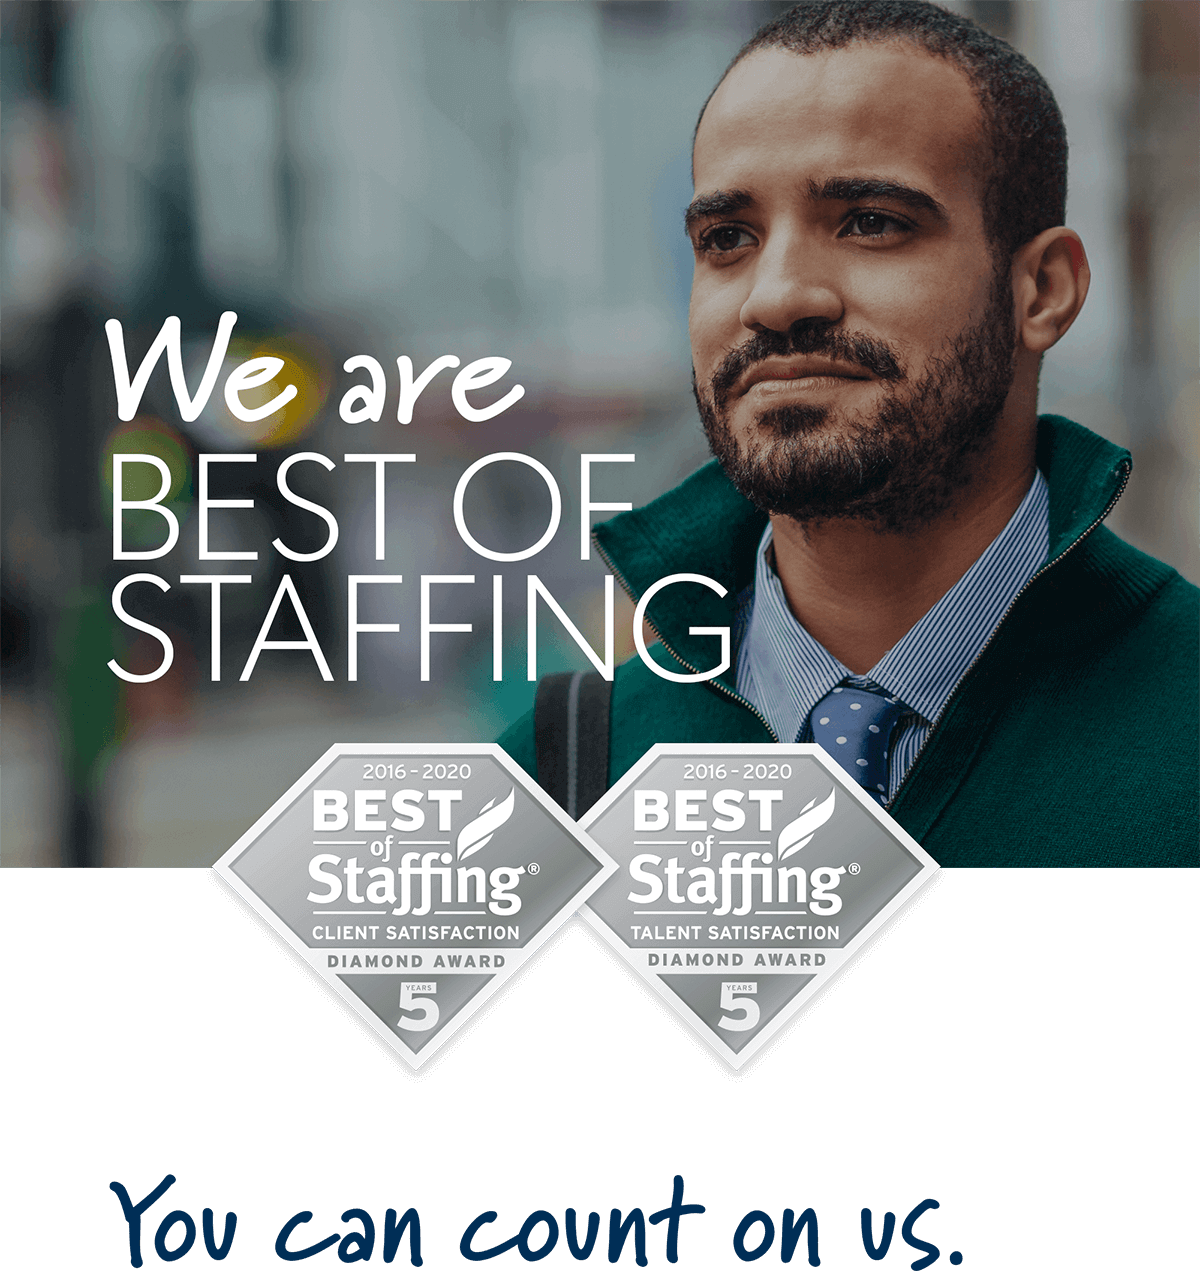 We are best of staffing. You can count on us.